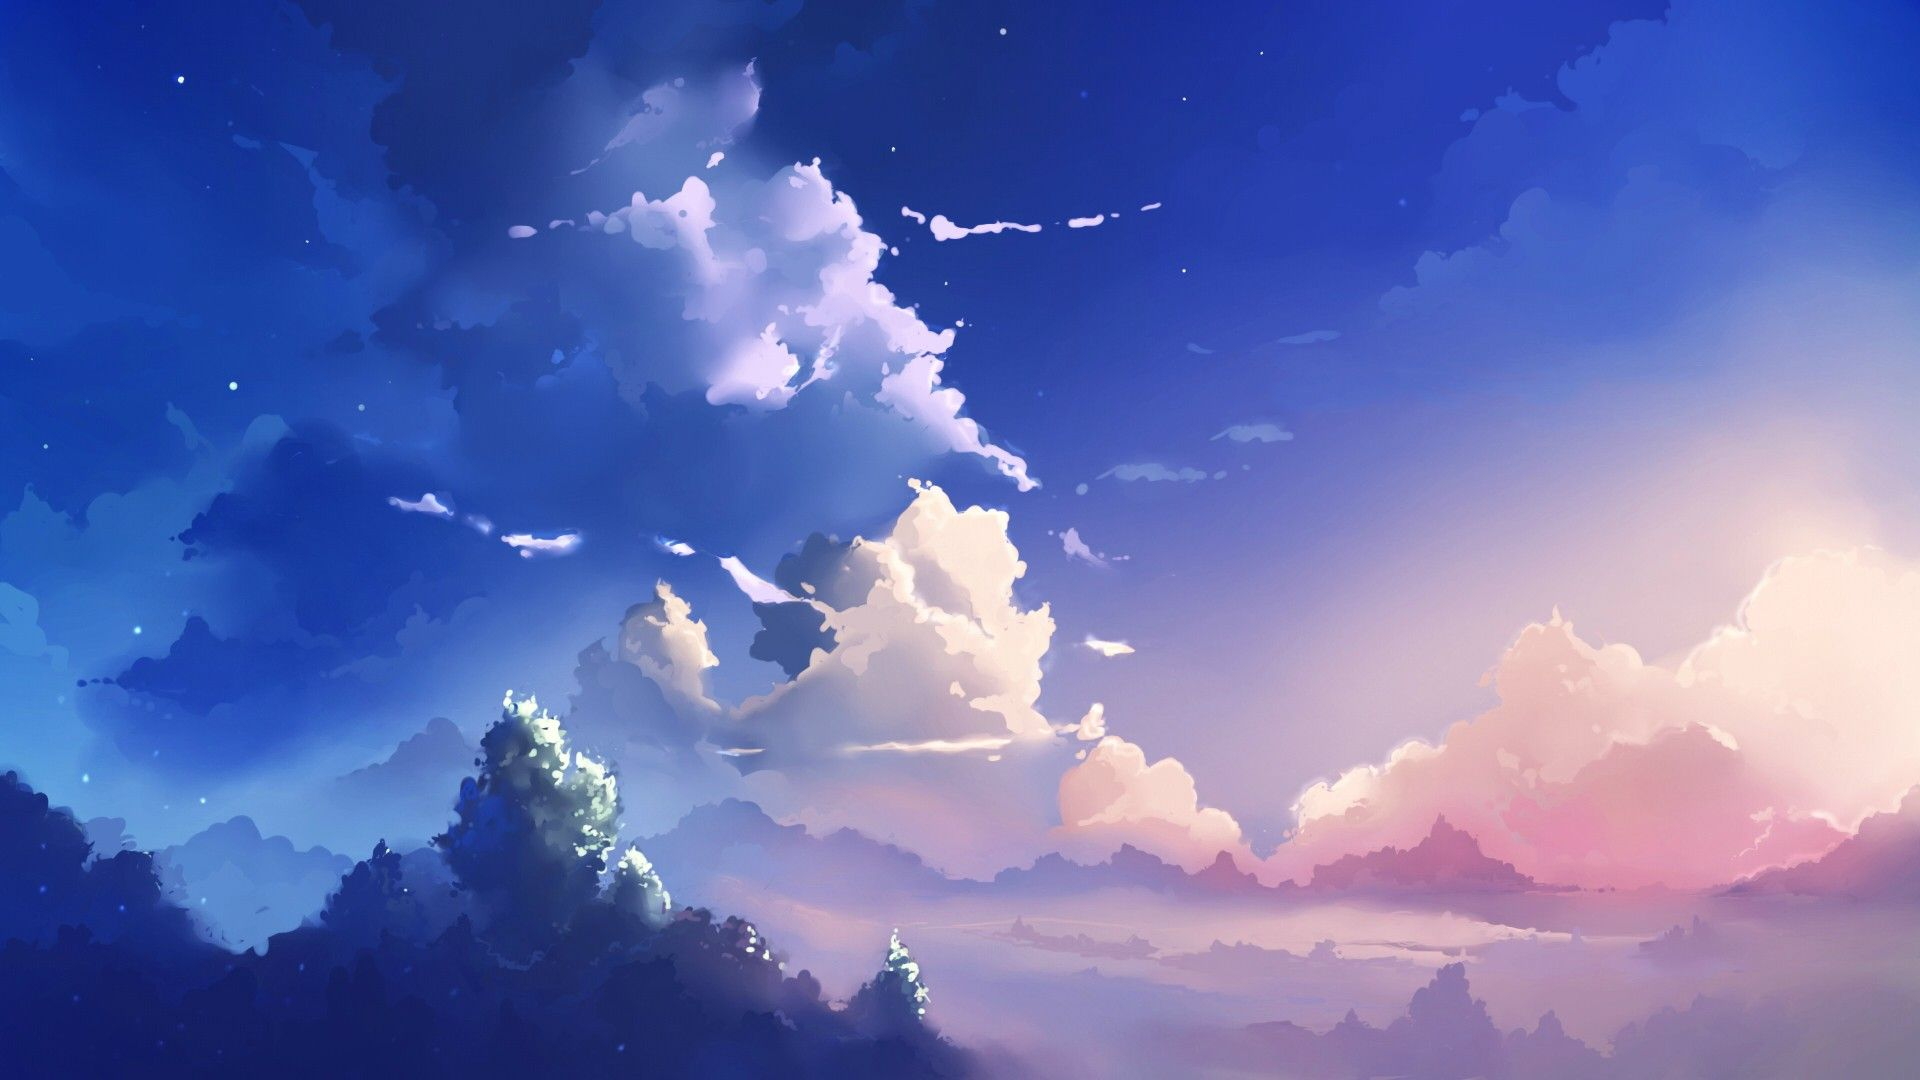 Colourful Sunset 1920x1080 Anime Scenery Wallpaper Anime Backgrounds Wallpapers Anime Scenery